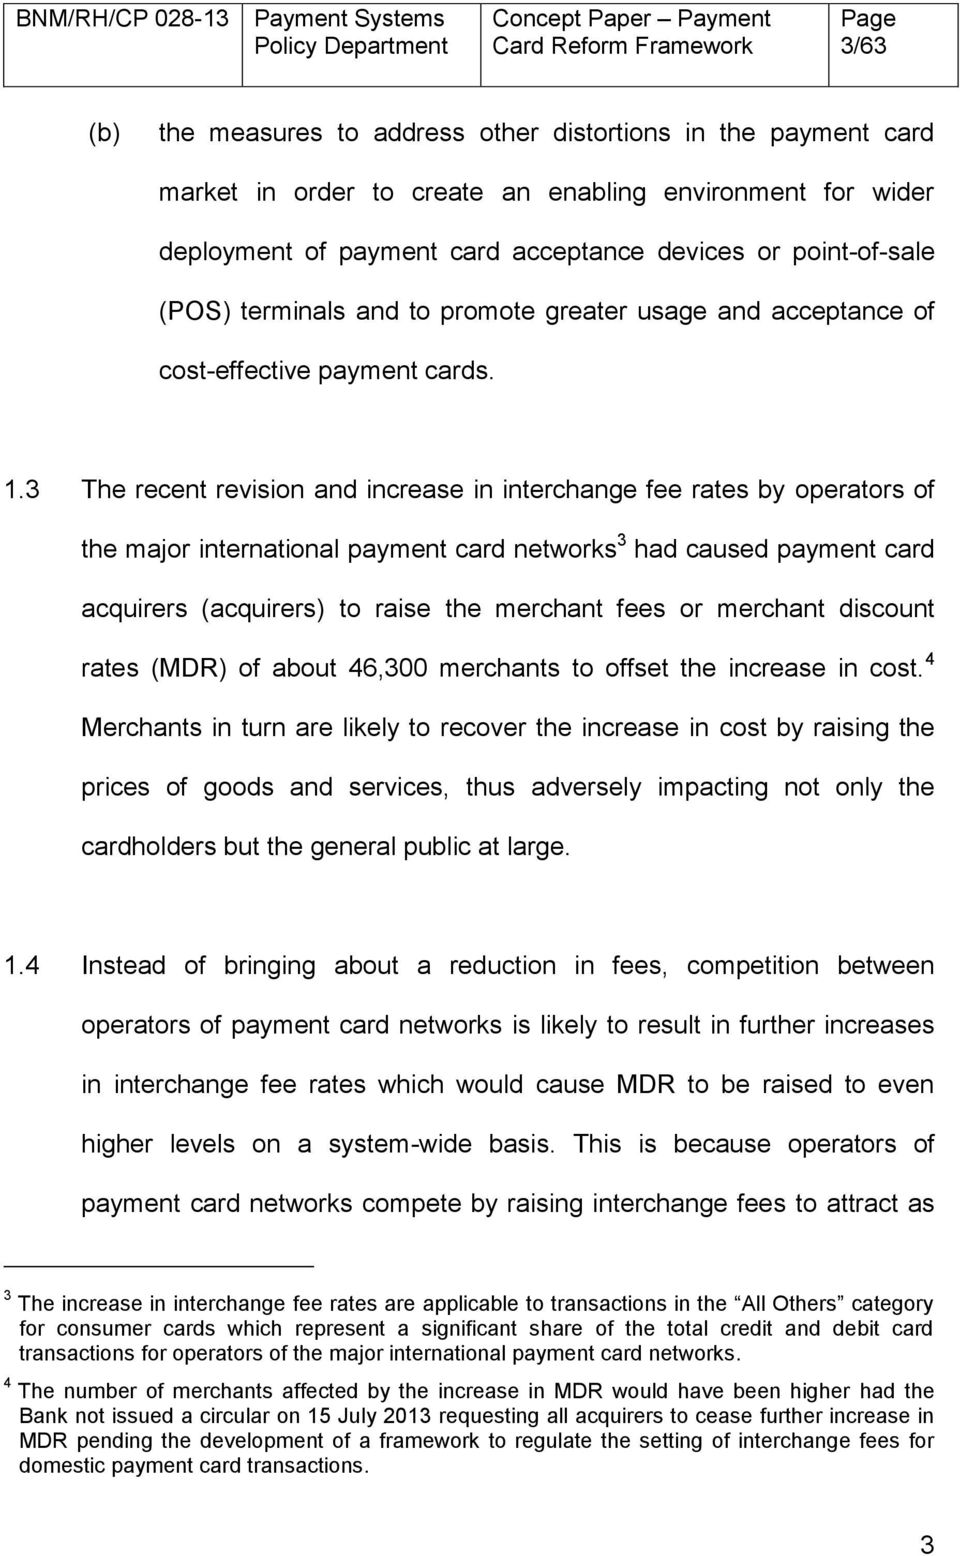 3 The recent revision and increase in interchange fee rates by operators of the major international payment card networks 3 had caused payment card acquirers (acquirers) to raise the merchant fees or